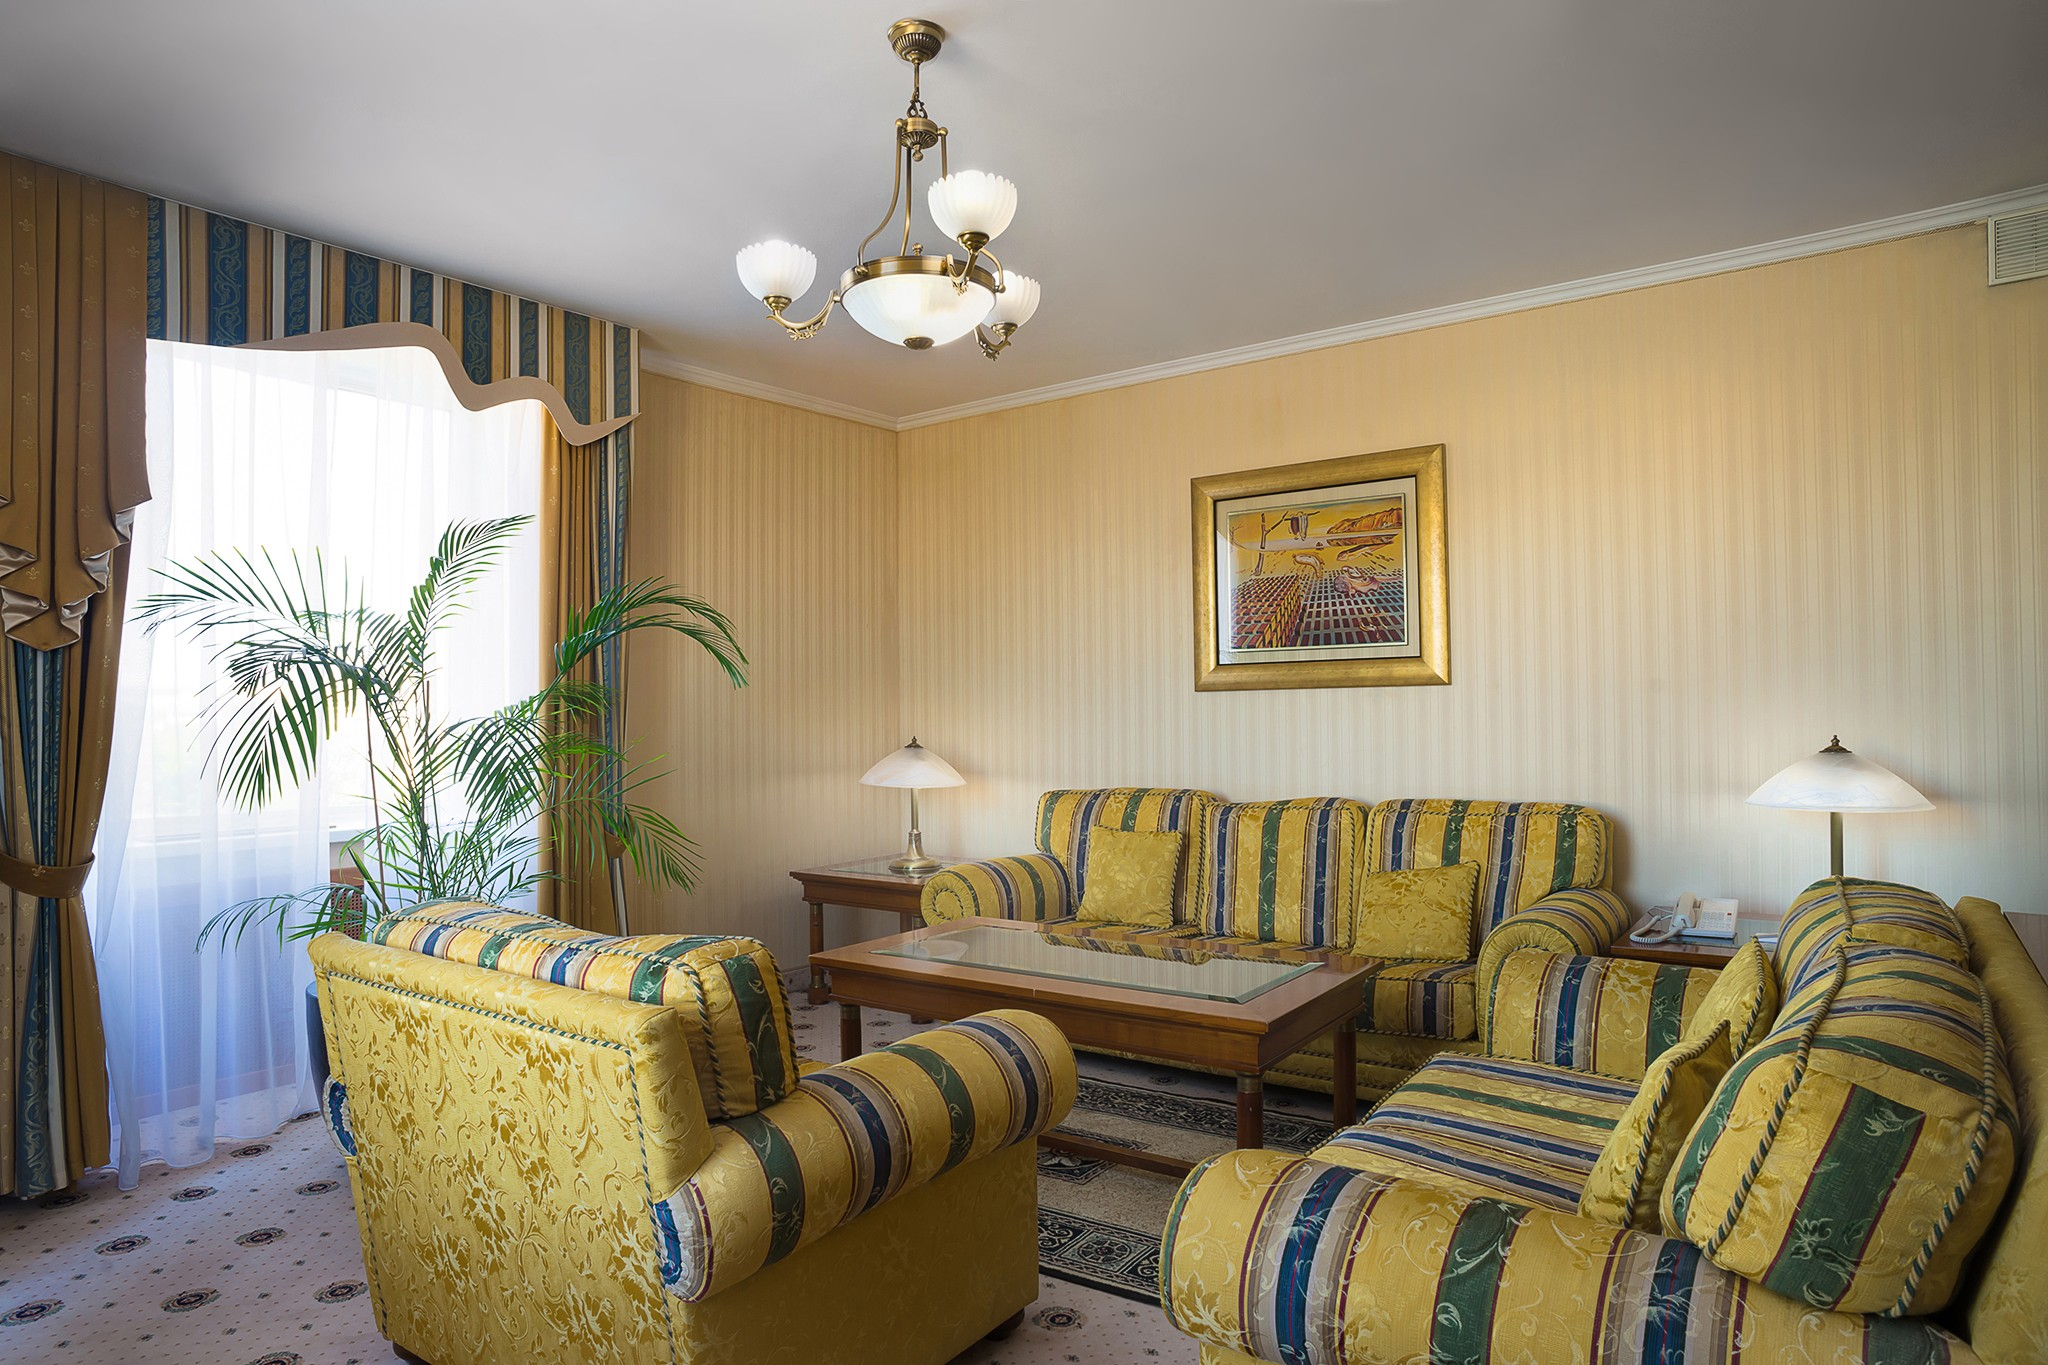 Interior photography of hotel apartments interior photographer Kirill Toll